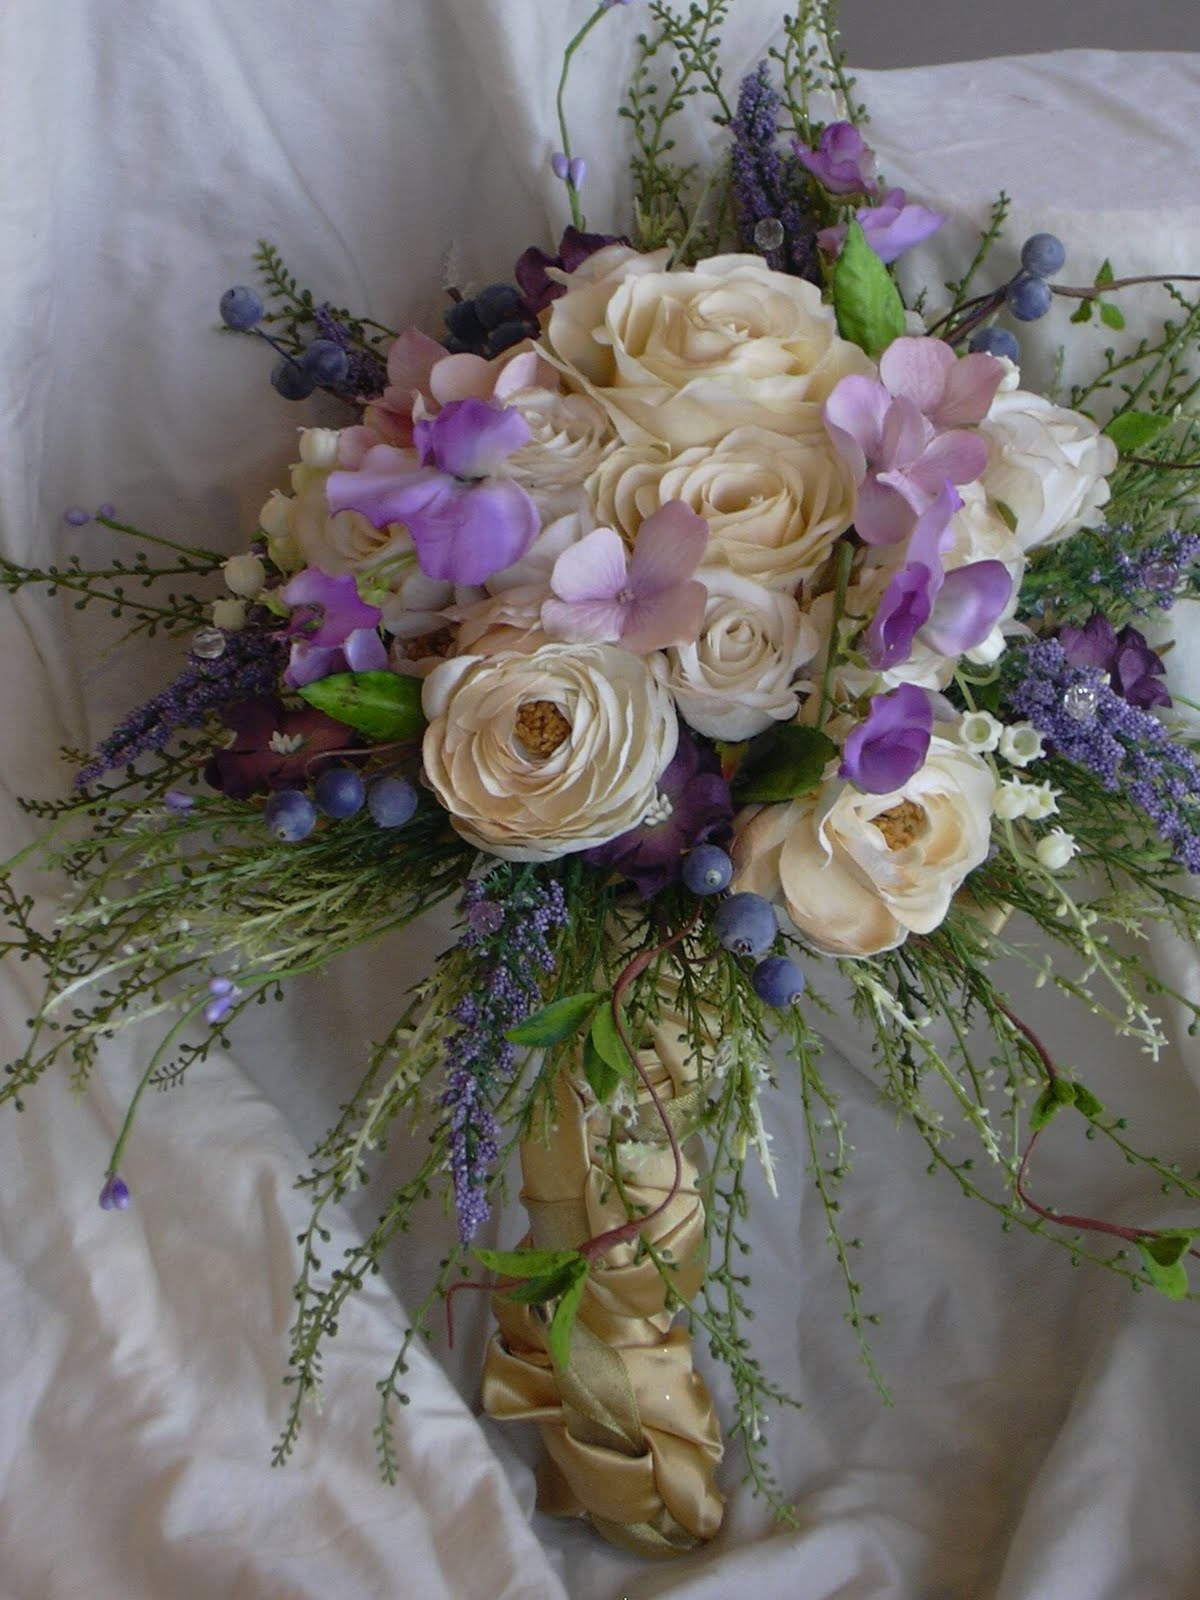 The Wedding Contessa Roses Have Meaning